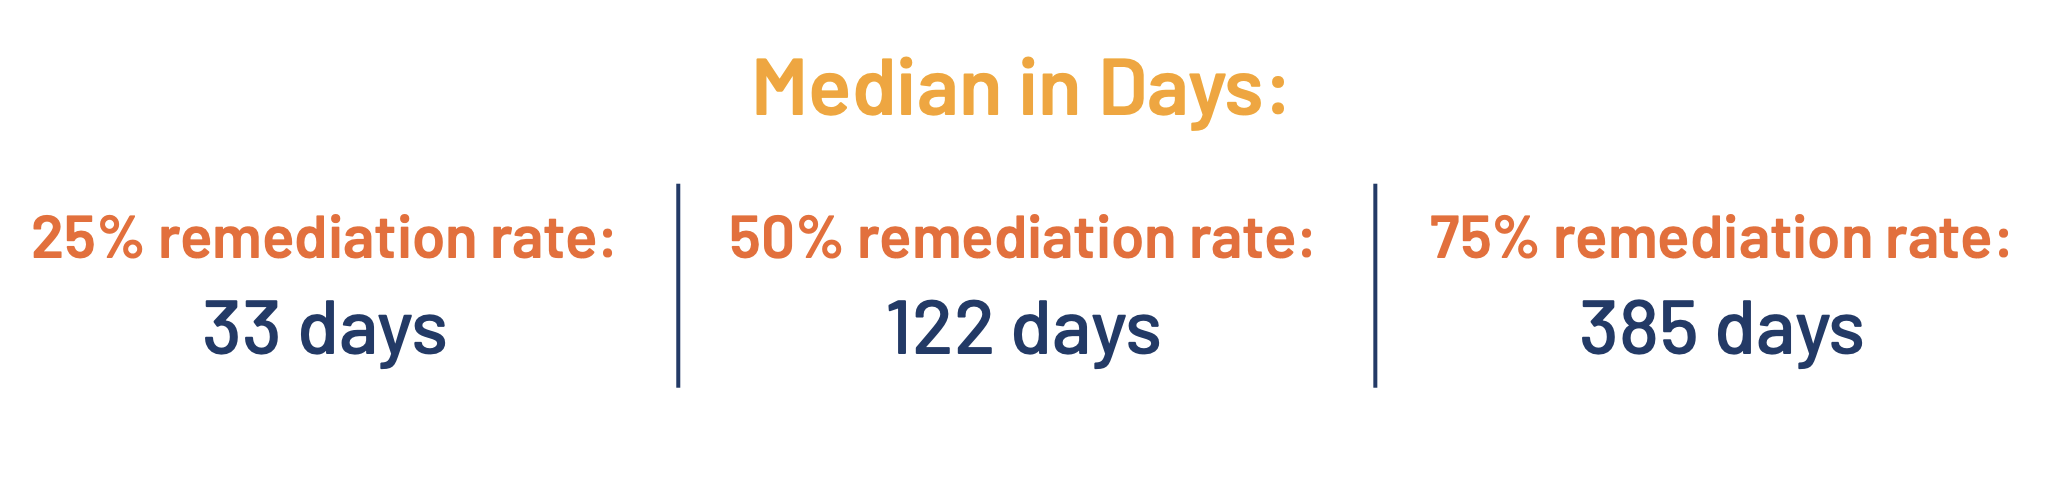 Stylized figures - Median remediation rate in days